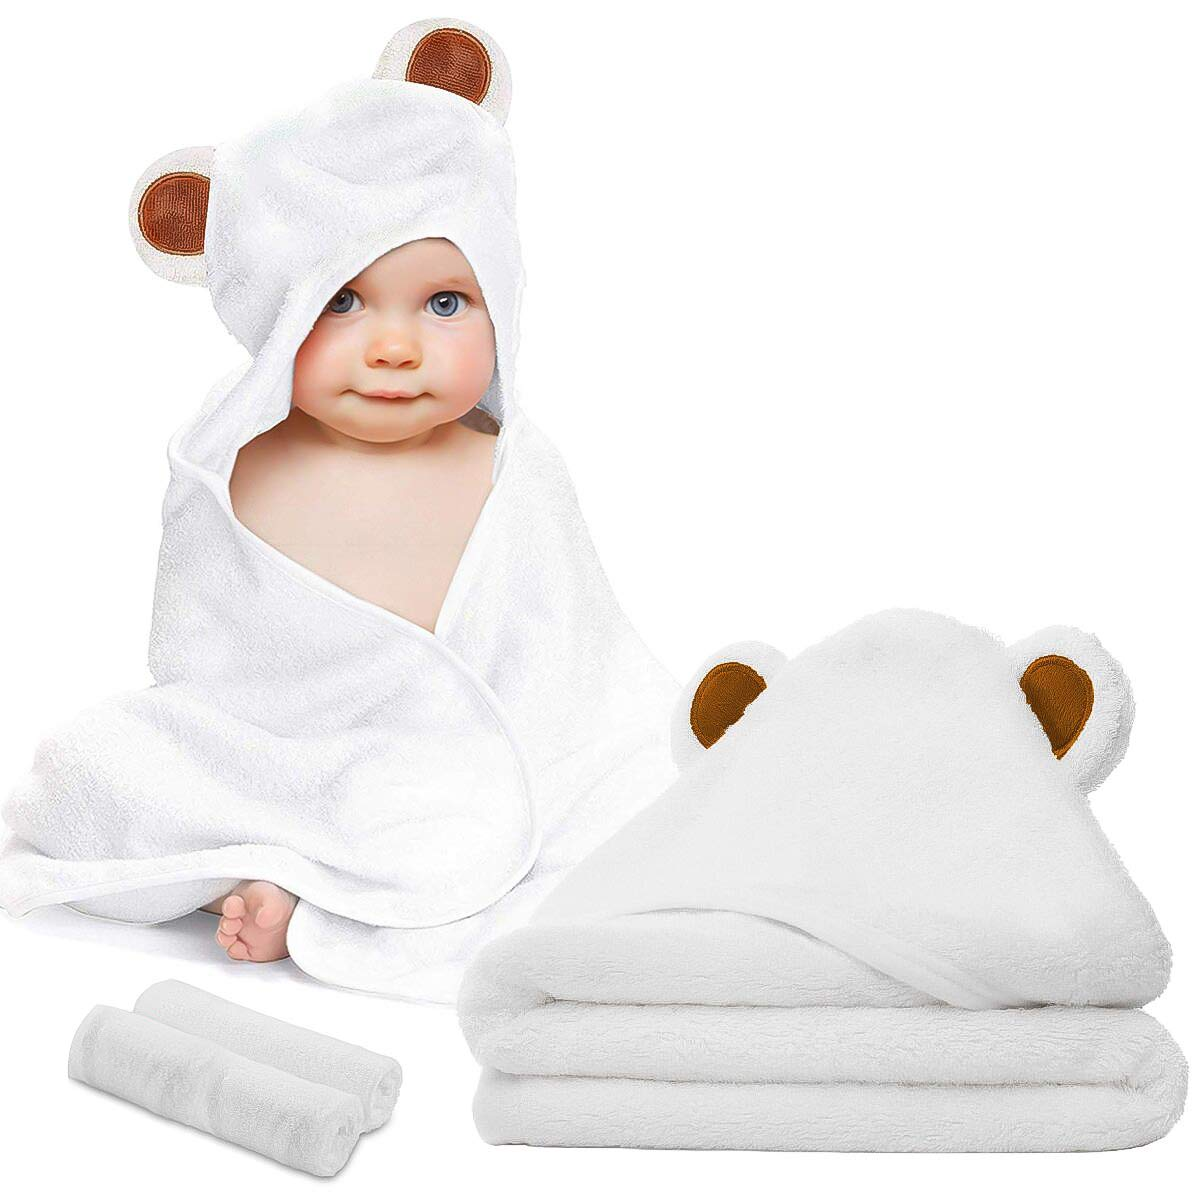 Baby Towel and Washcloth Set-Baby Bath Towel and Washcloth -Hooded Towel and Washcloth- Bamboo Fiber Hooded Baby Towel for Boys, Girls, Kids, Toddlers, Newborn Bath Present(35 by 35in) by CIGREEN